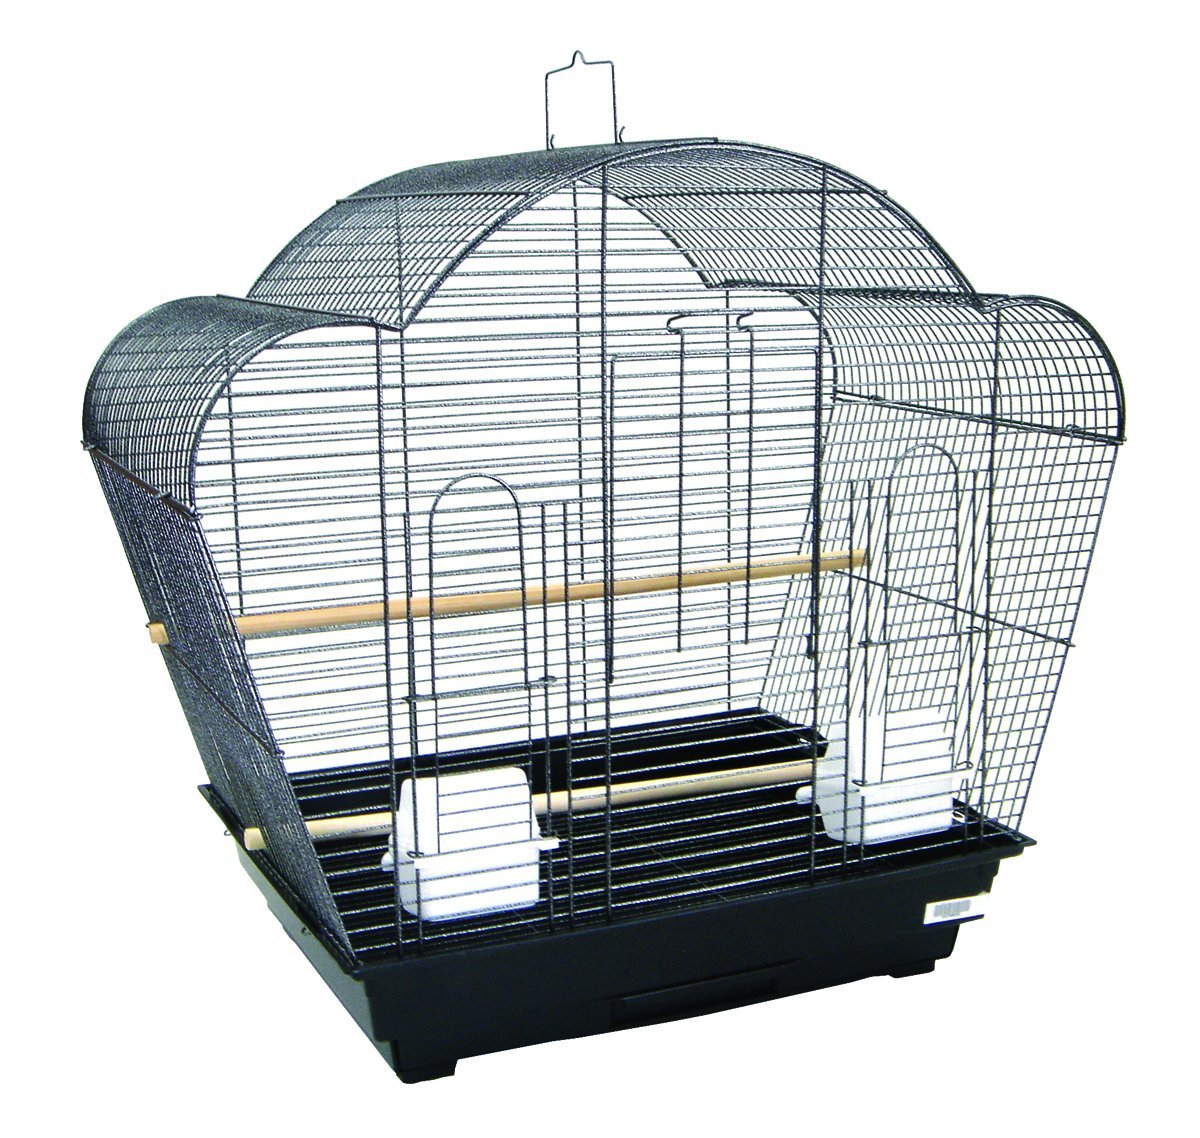 YML A1954 1/2-Inch Bar Spacing Shell Top Small Bird Cage, 20-Inch by 16-Inch, White A1954WHT